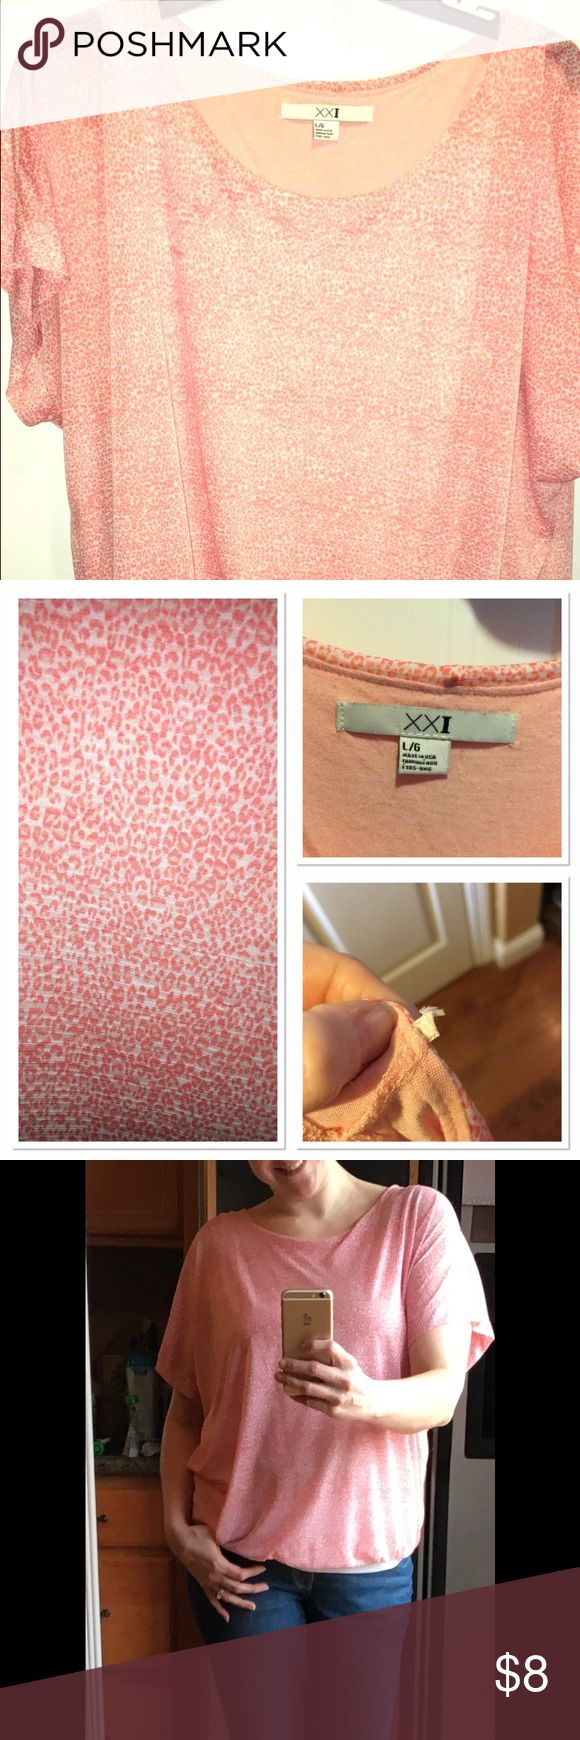 Forever 21 pink leopard shirt Forever 21 pinkish orange leopard shirt. This shirt is loose fitting and so fun. Normal wear good condition I did cut the hanger strings off but you can't tell when wearing I just dislike those strings. Forever 21 Tops Blouses